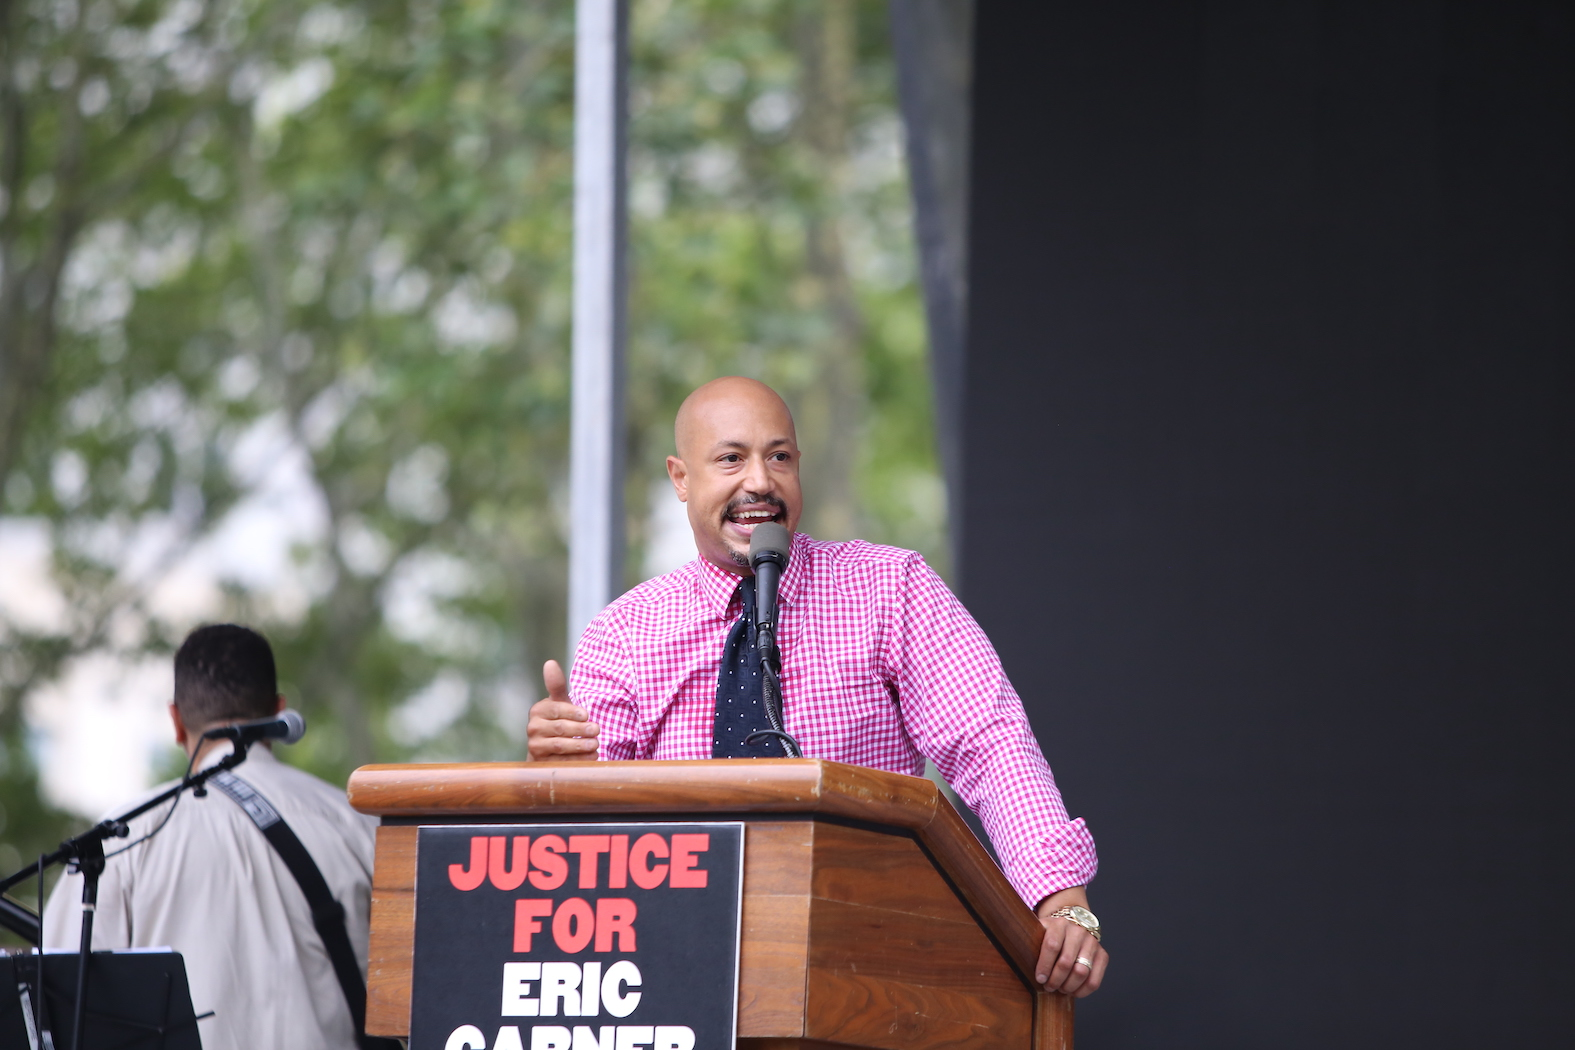 Arc of Justice founder Kirsten John Foy at a rally marking the anniversary of Eric Garner's death in 2015.